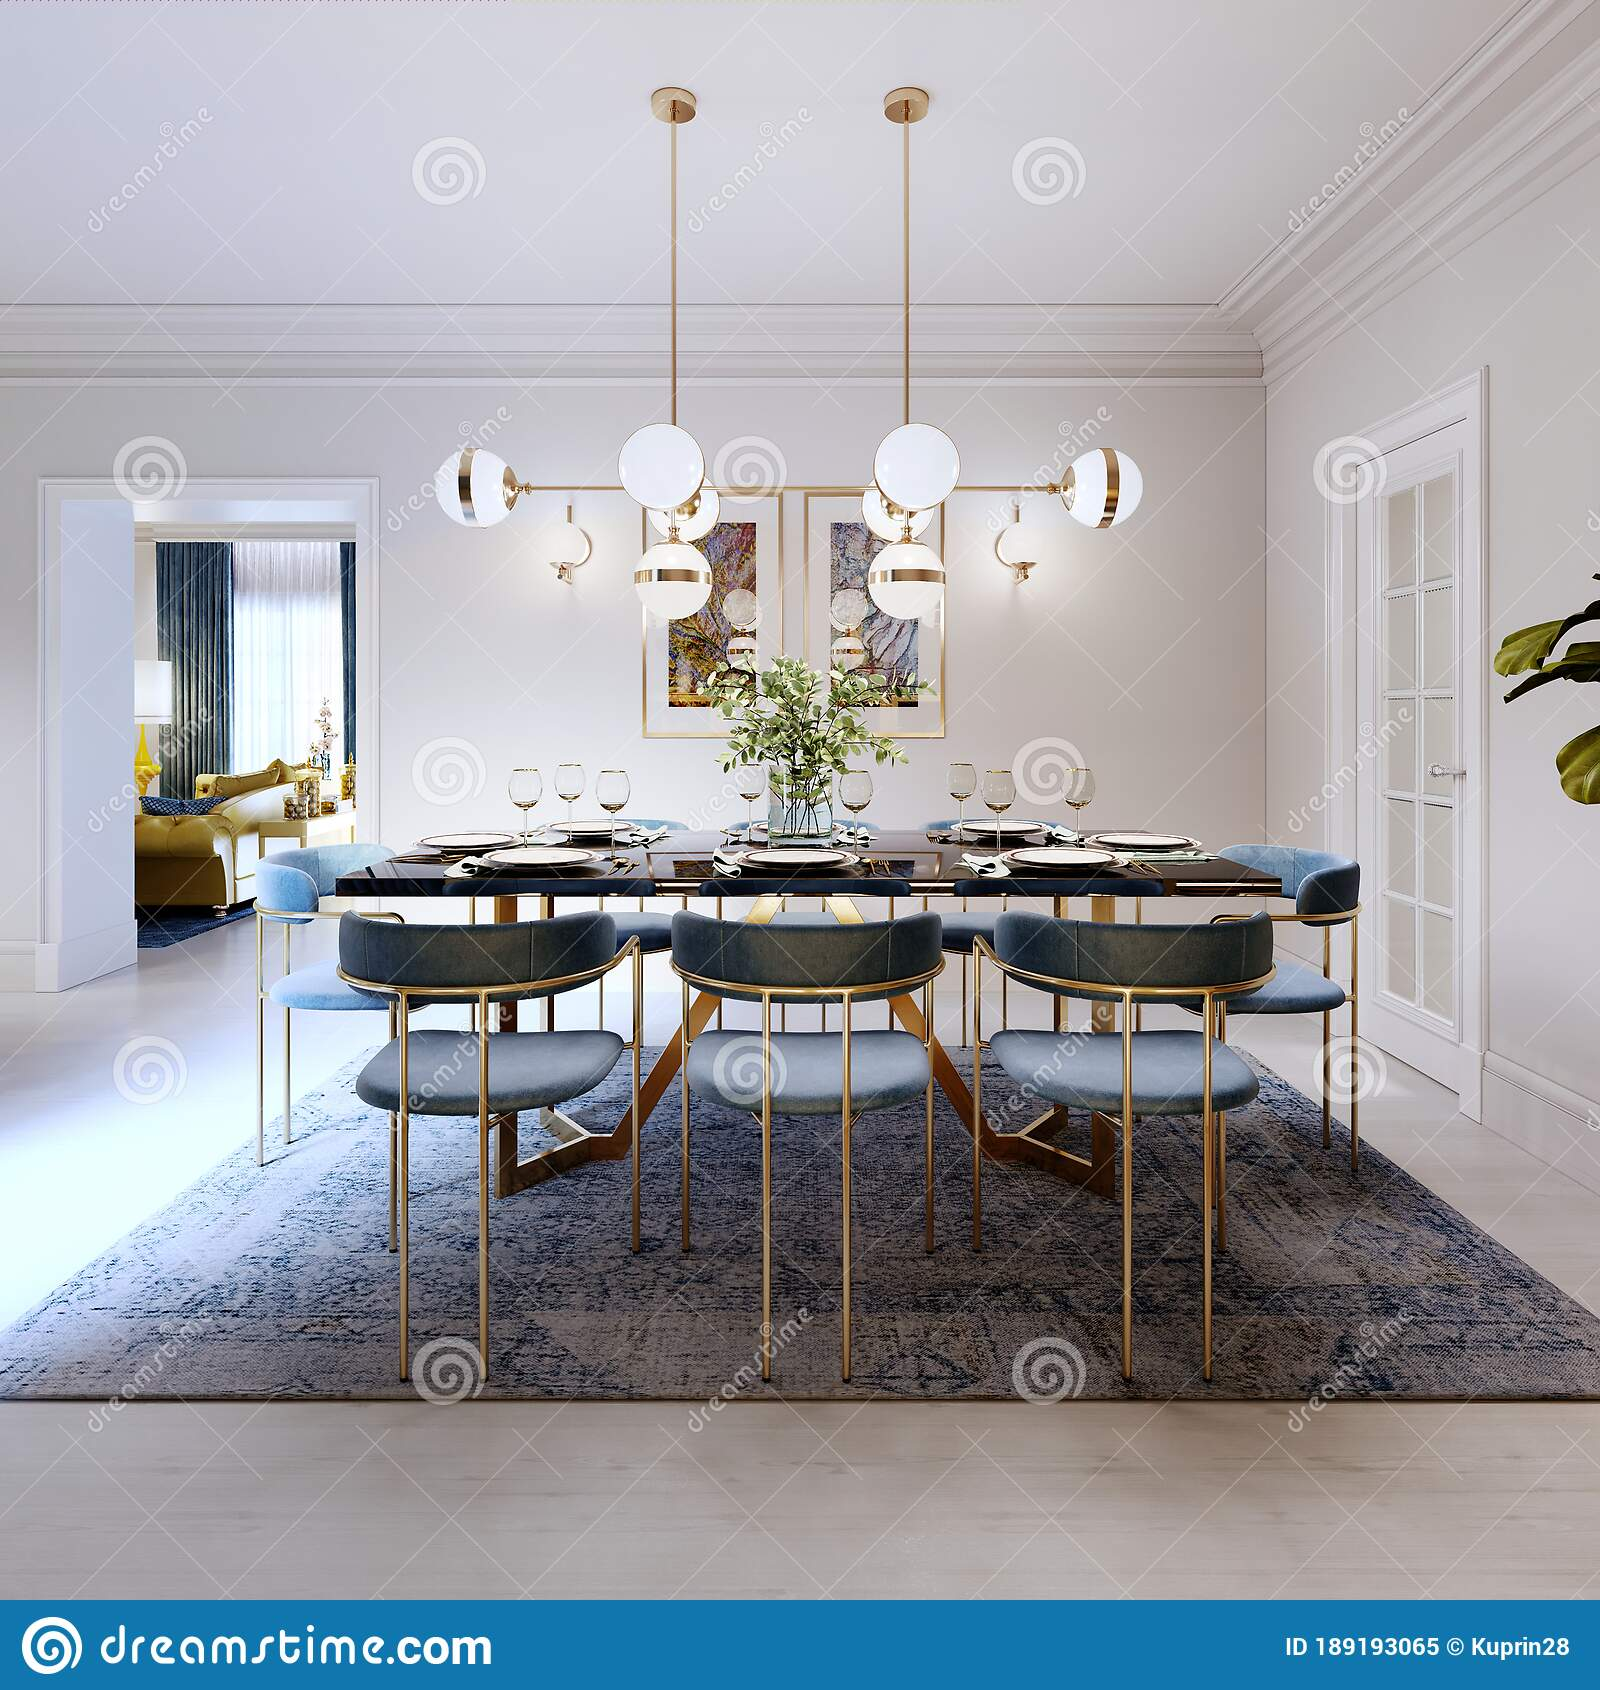 Fashionable Designer Dining Table Black Countertop Blue Chairs Yellow Furniture Dining Area With Kitchen Multi Colored Meel Stock Illustration Illustration Of Contemporary Floor 189193065